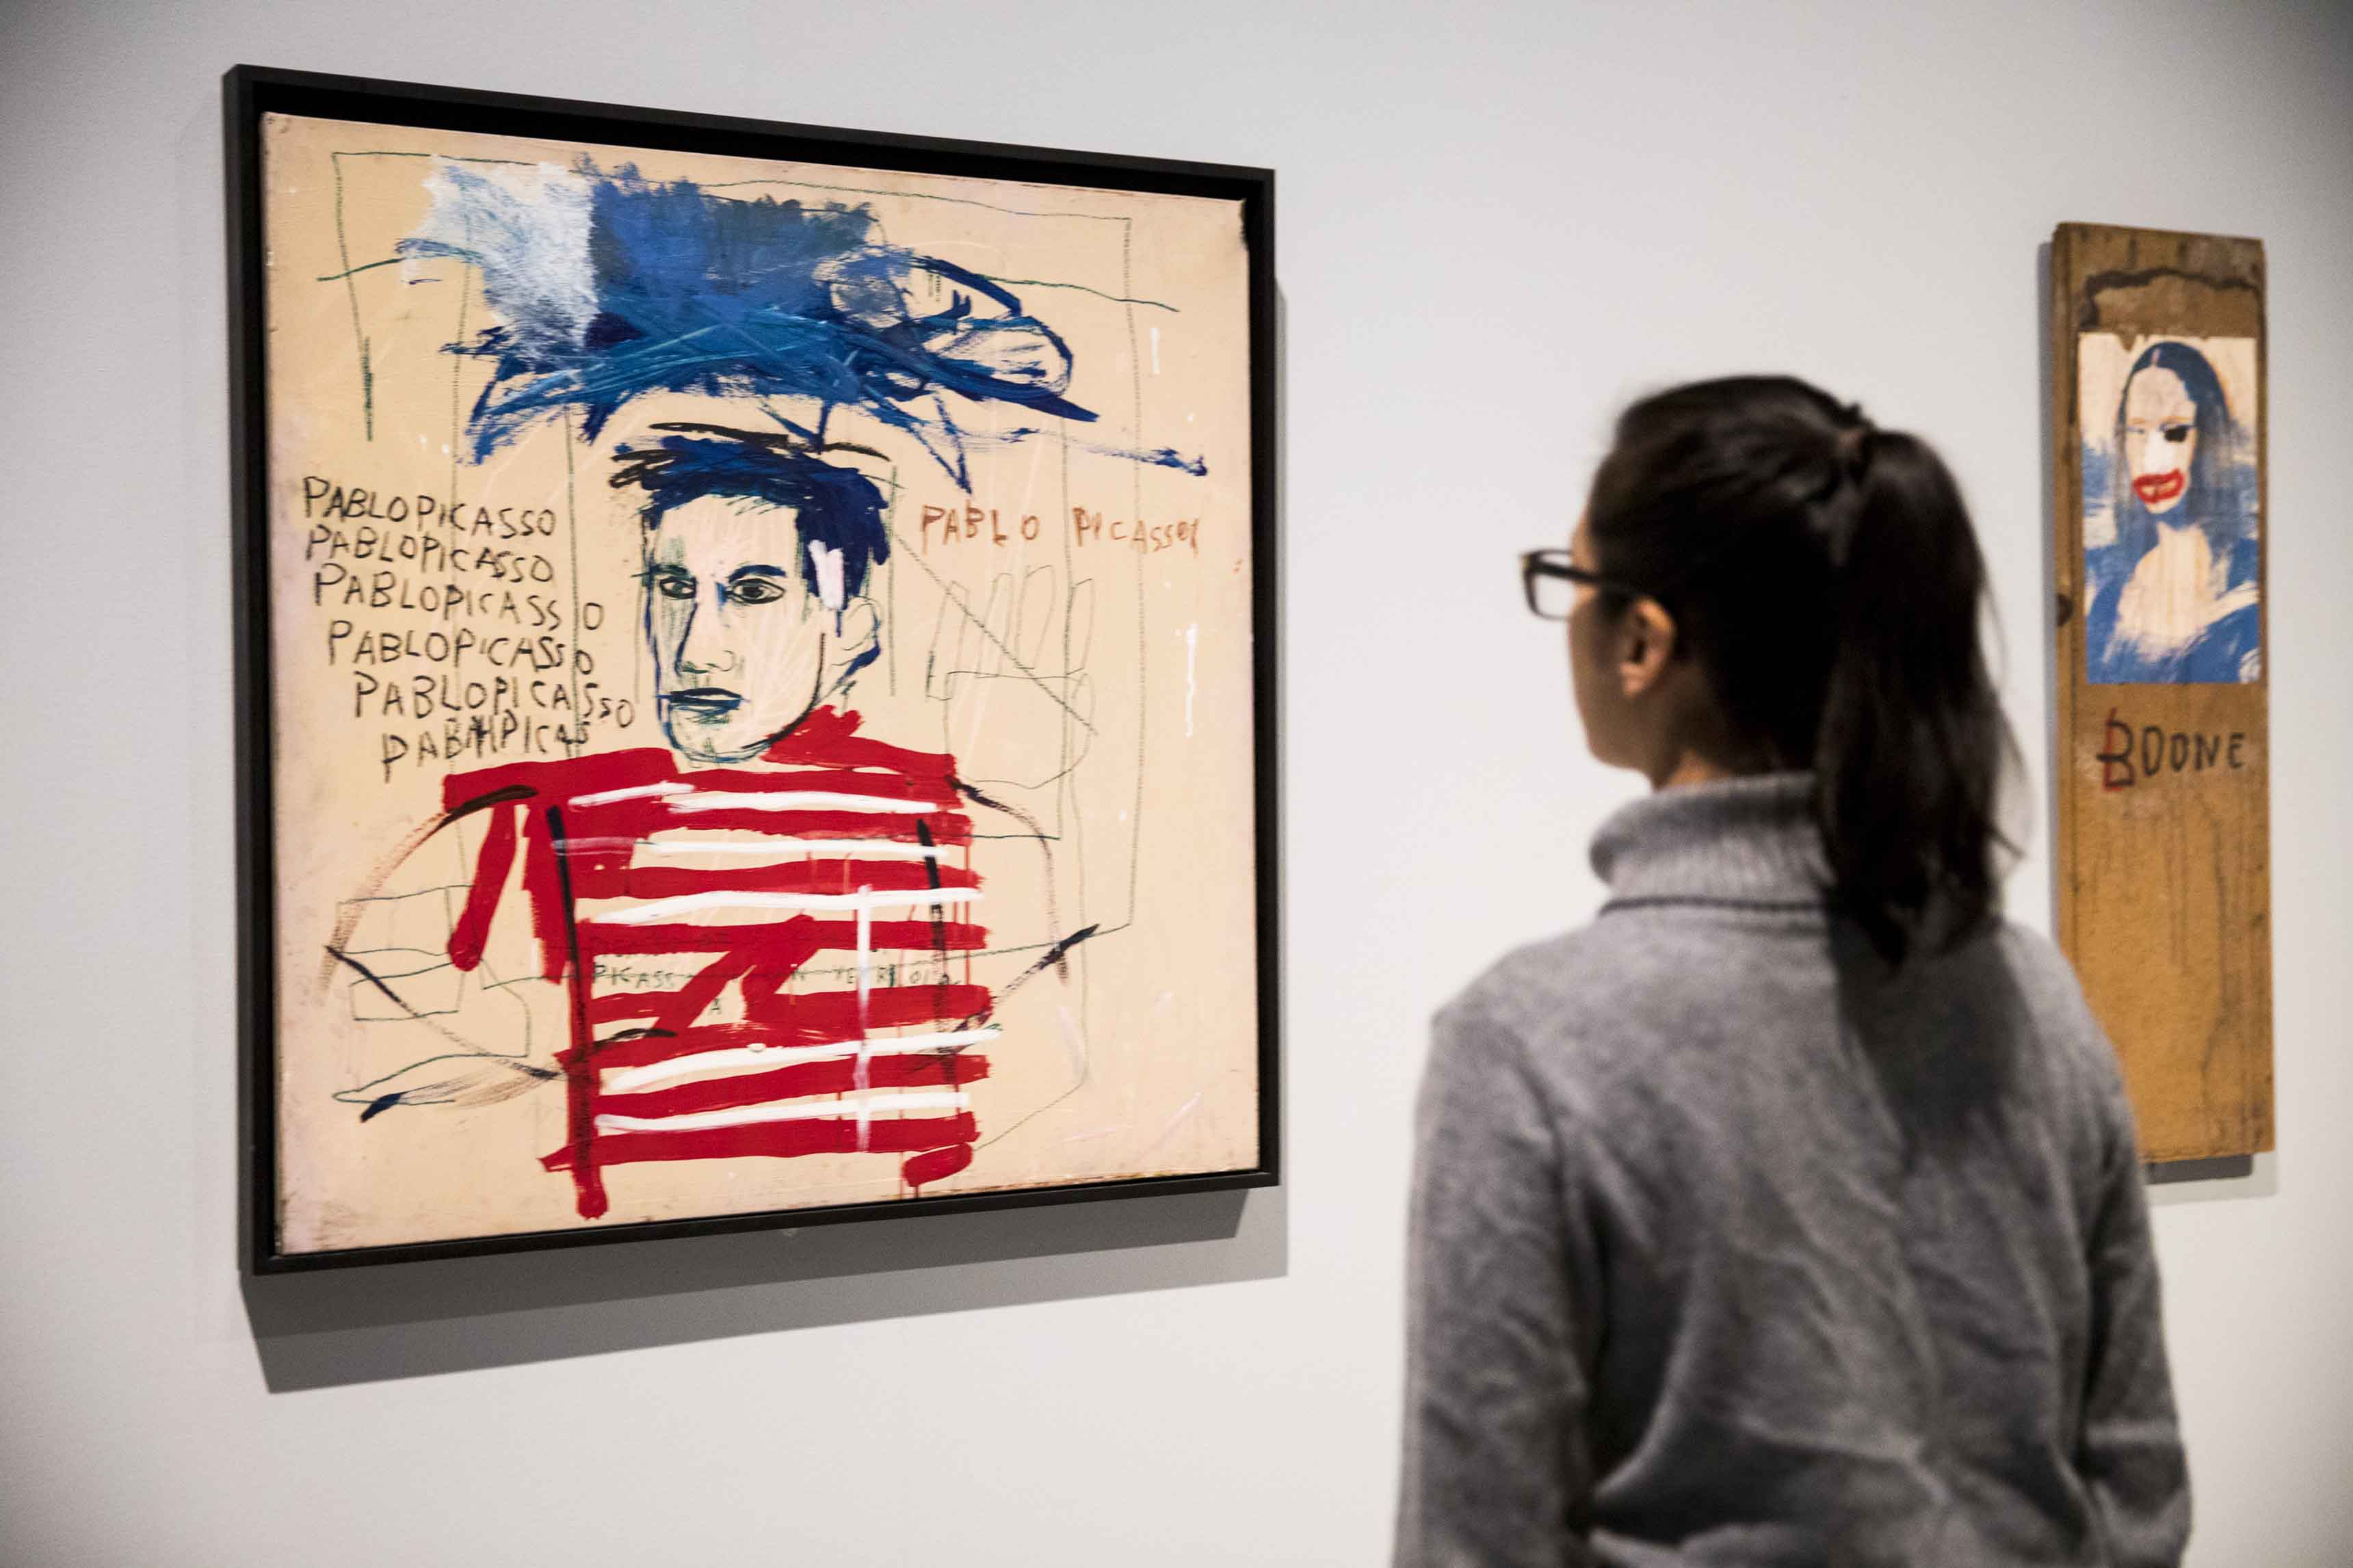 Basquiat: Boom For Real Installation view Barbican Art Gallery 21 September 2017 – 28 January 2018 © Tristan Fewings / Getty Images Artworks: Jean-Michel Basquiat Untitled (Pablo Picasso), 1984 Private collection, Italy. © The Estate of Jean-Michel Basquiat. Licensed by Artestar, New York.